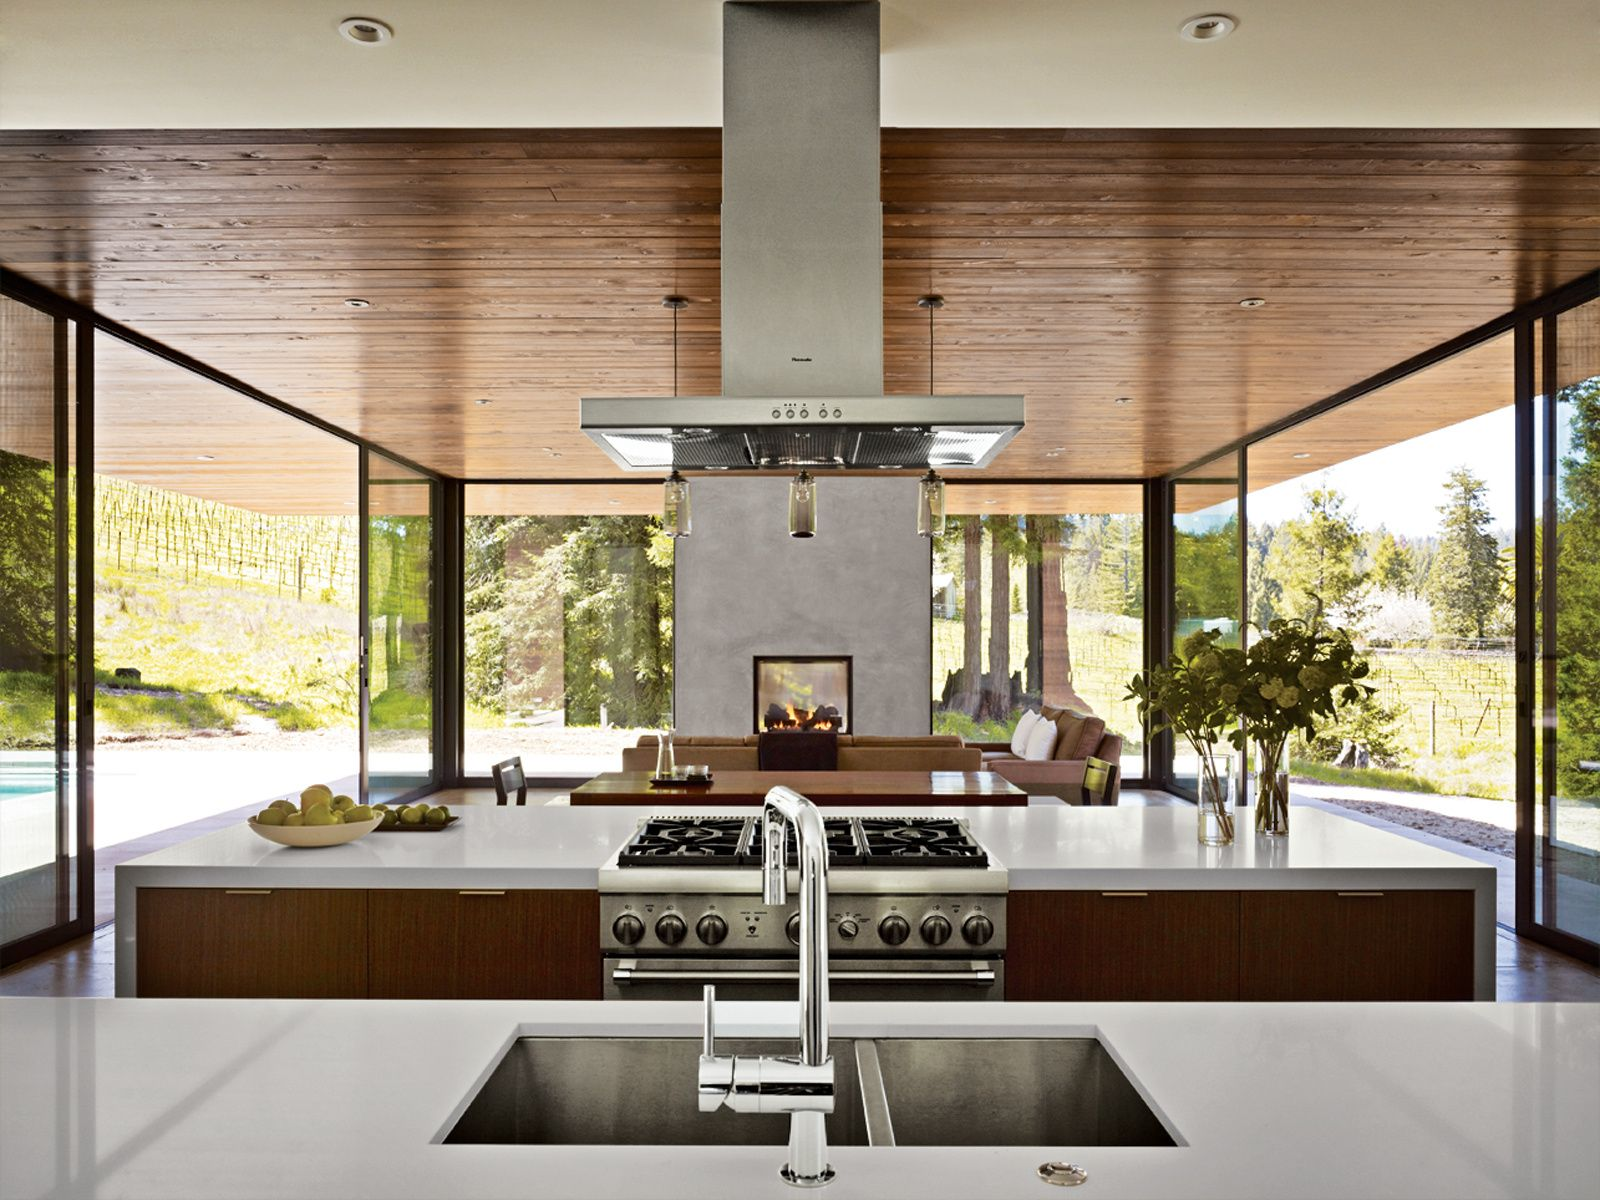 1000+ images about Farmhouse modern industrial Kitchen- ideas on ... - ^